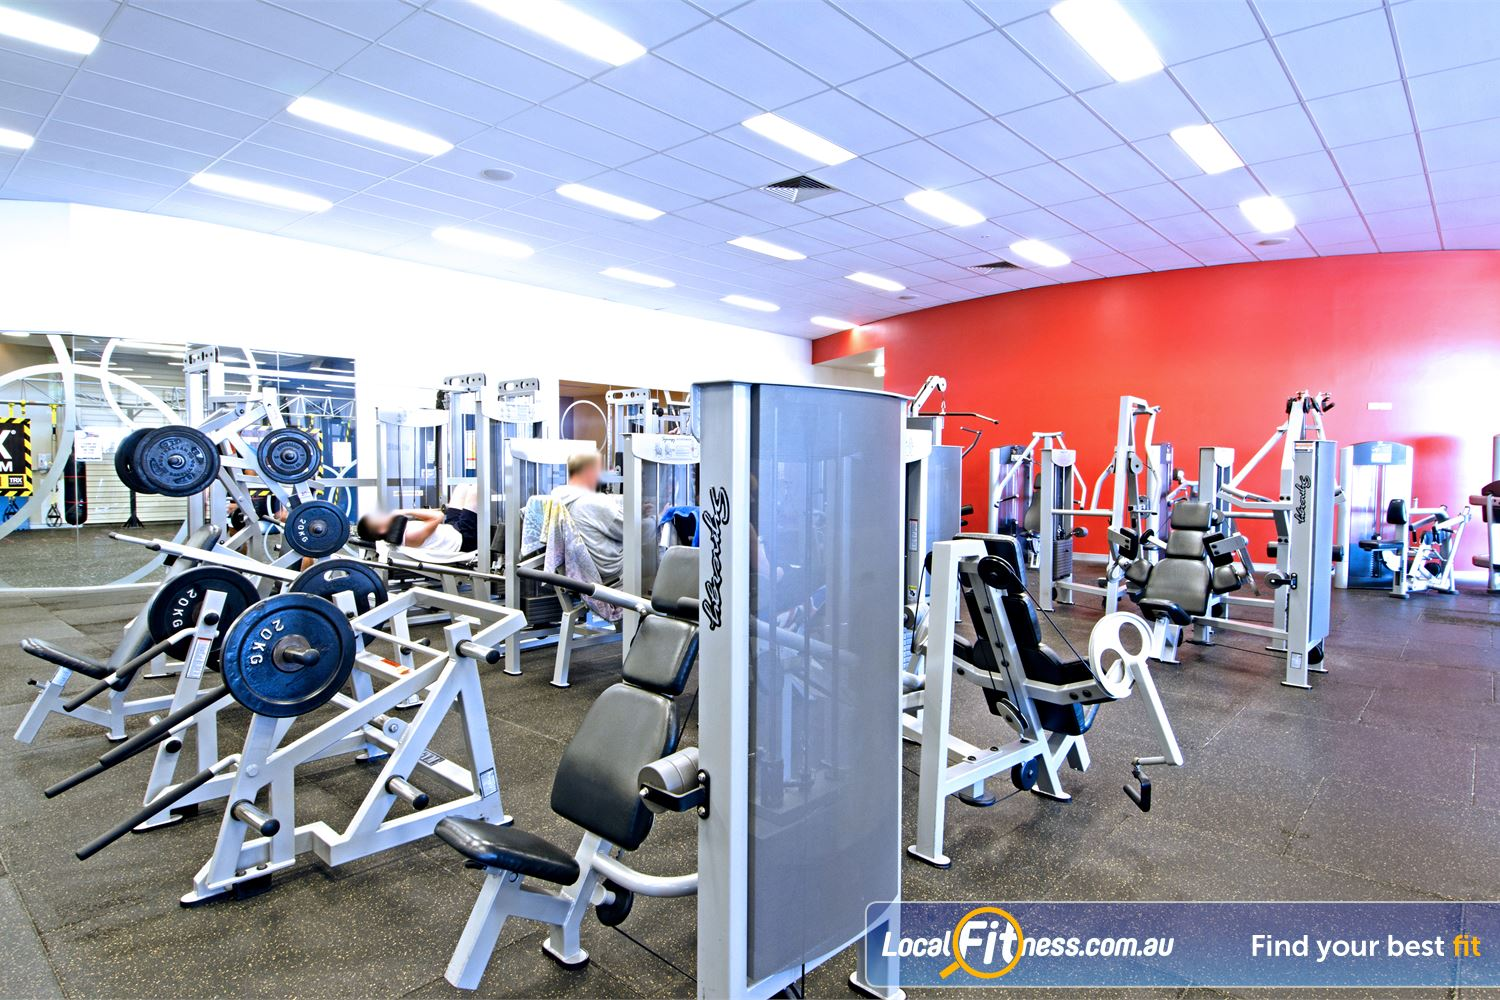 Goodlife Health Clubs Cleveland The Cleveland gym includes an extensive selection of equipment from Calgym and Life Fitness.